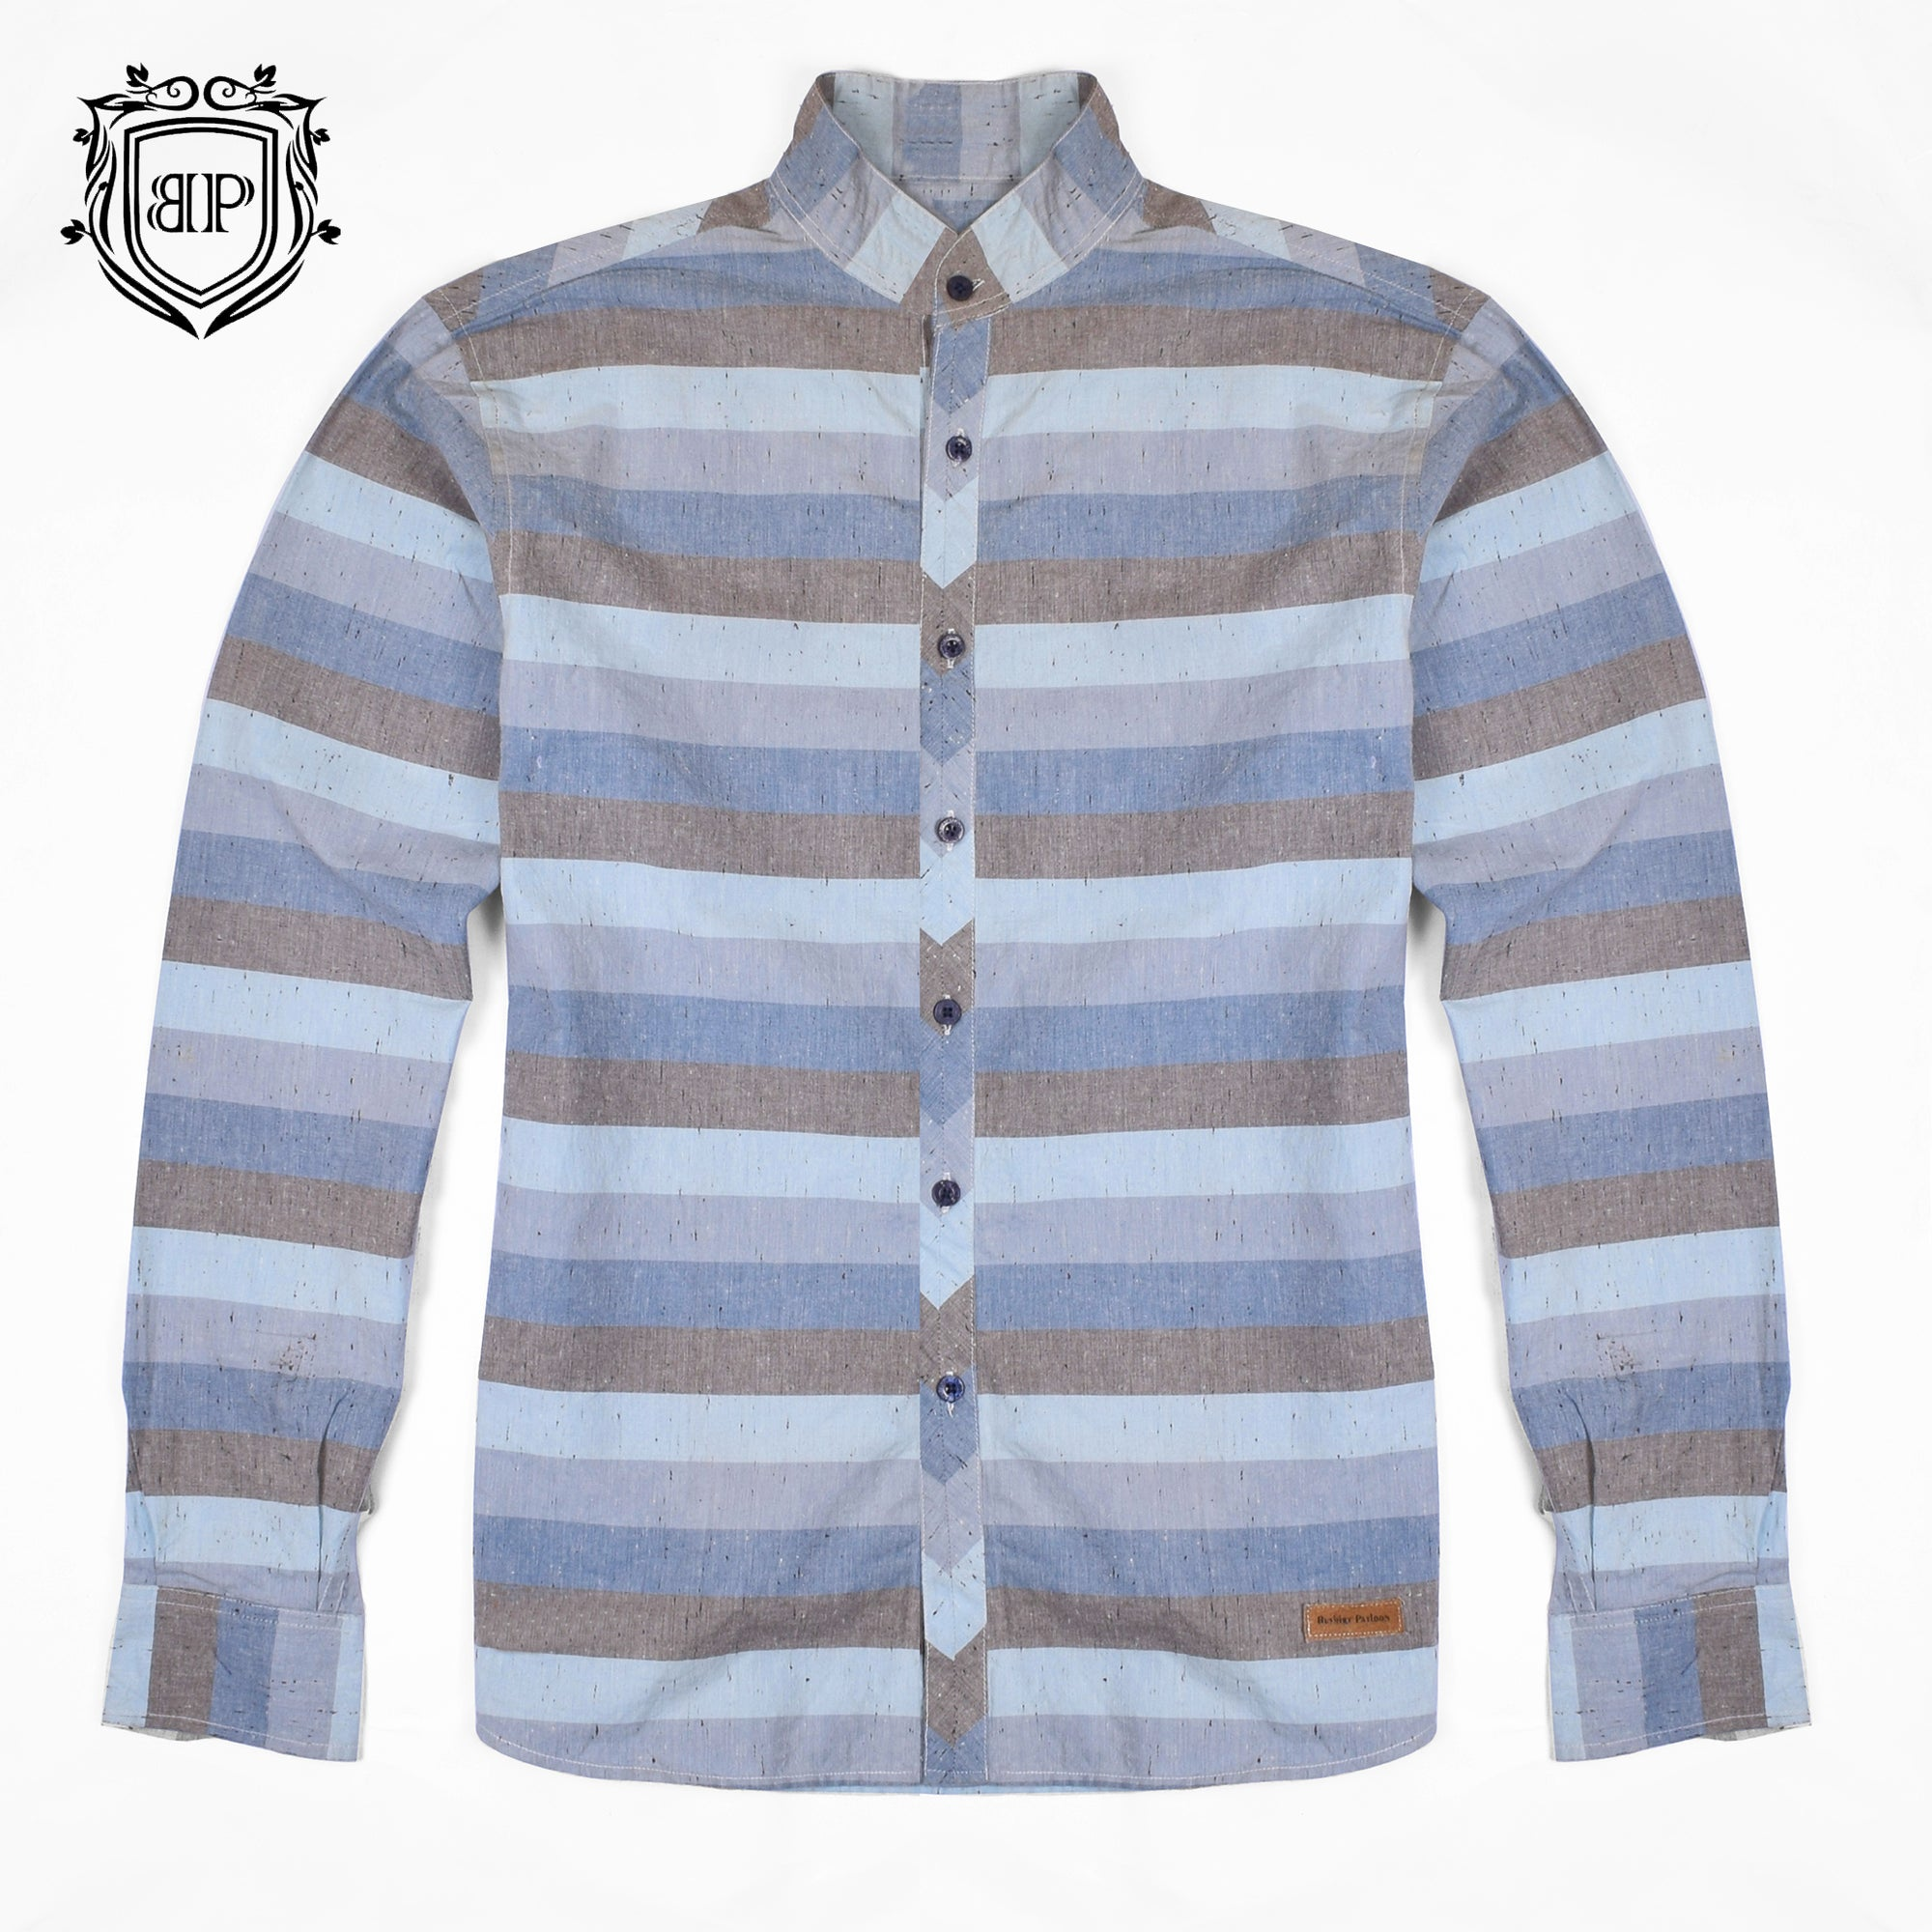 brandsego - Bushirt Patloon Casual Shirt For Men-NA1131